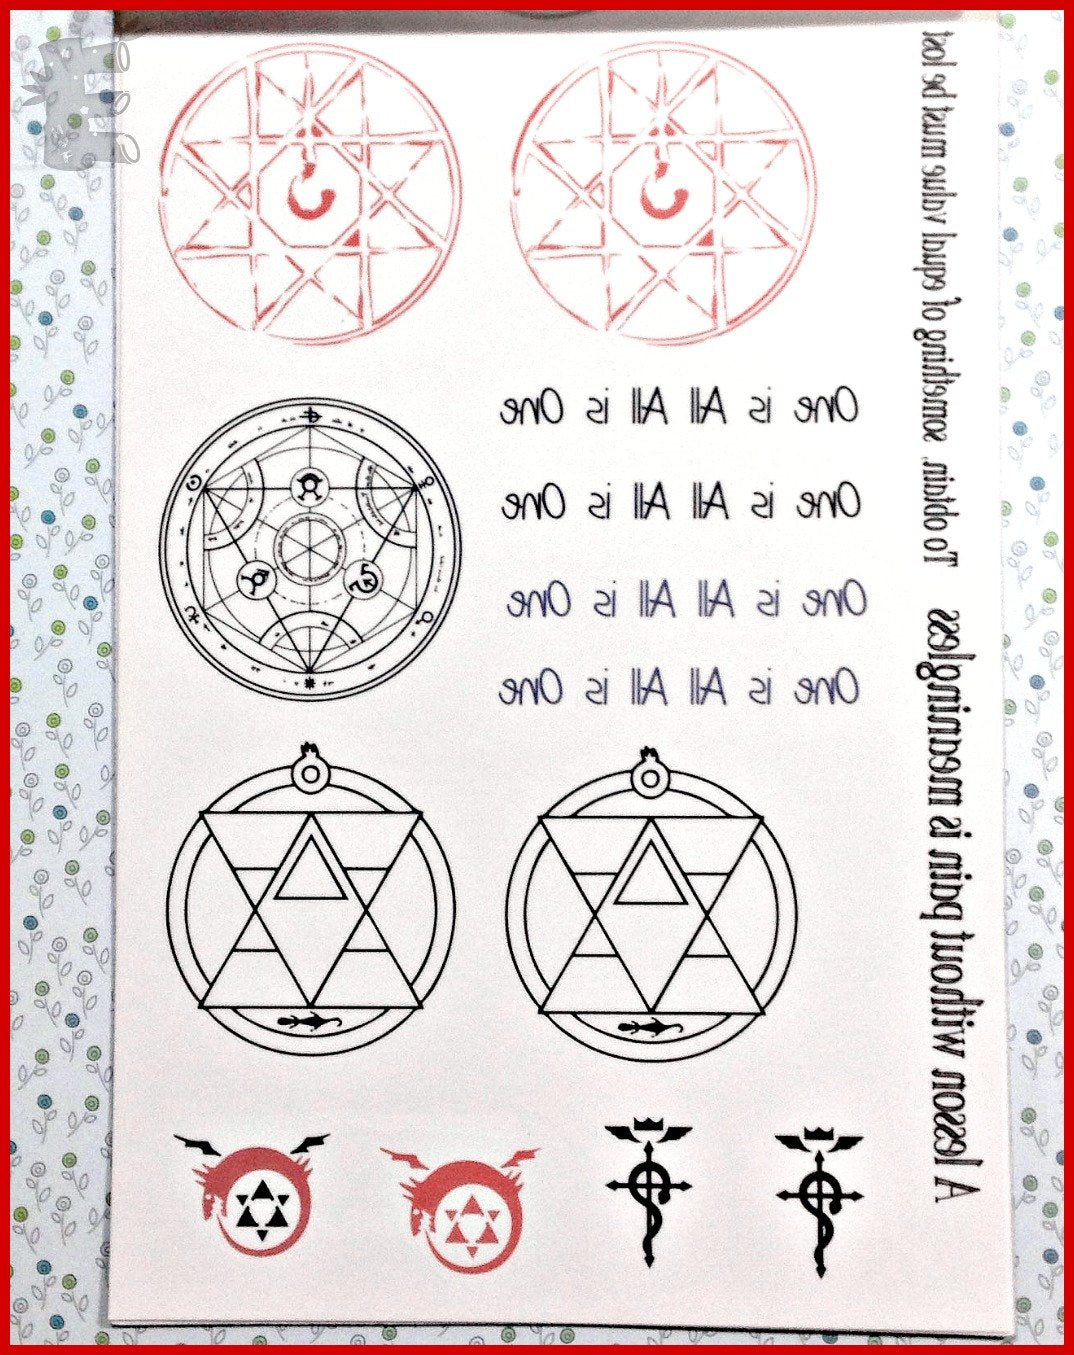 Fma Roy Mustangs Flame Temporary Tattoo With Bonus Alchemy Symbols